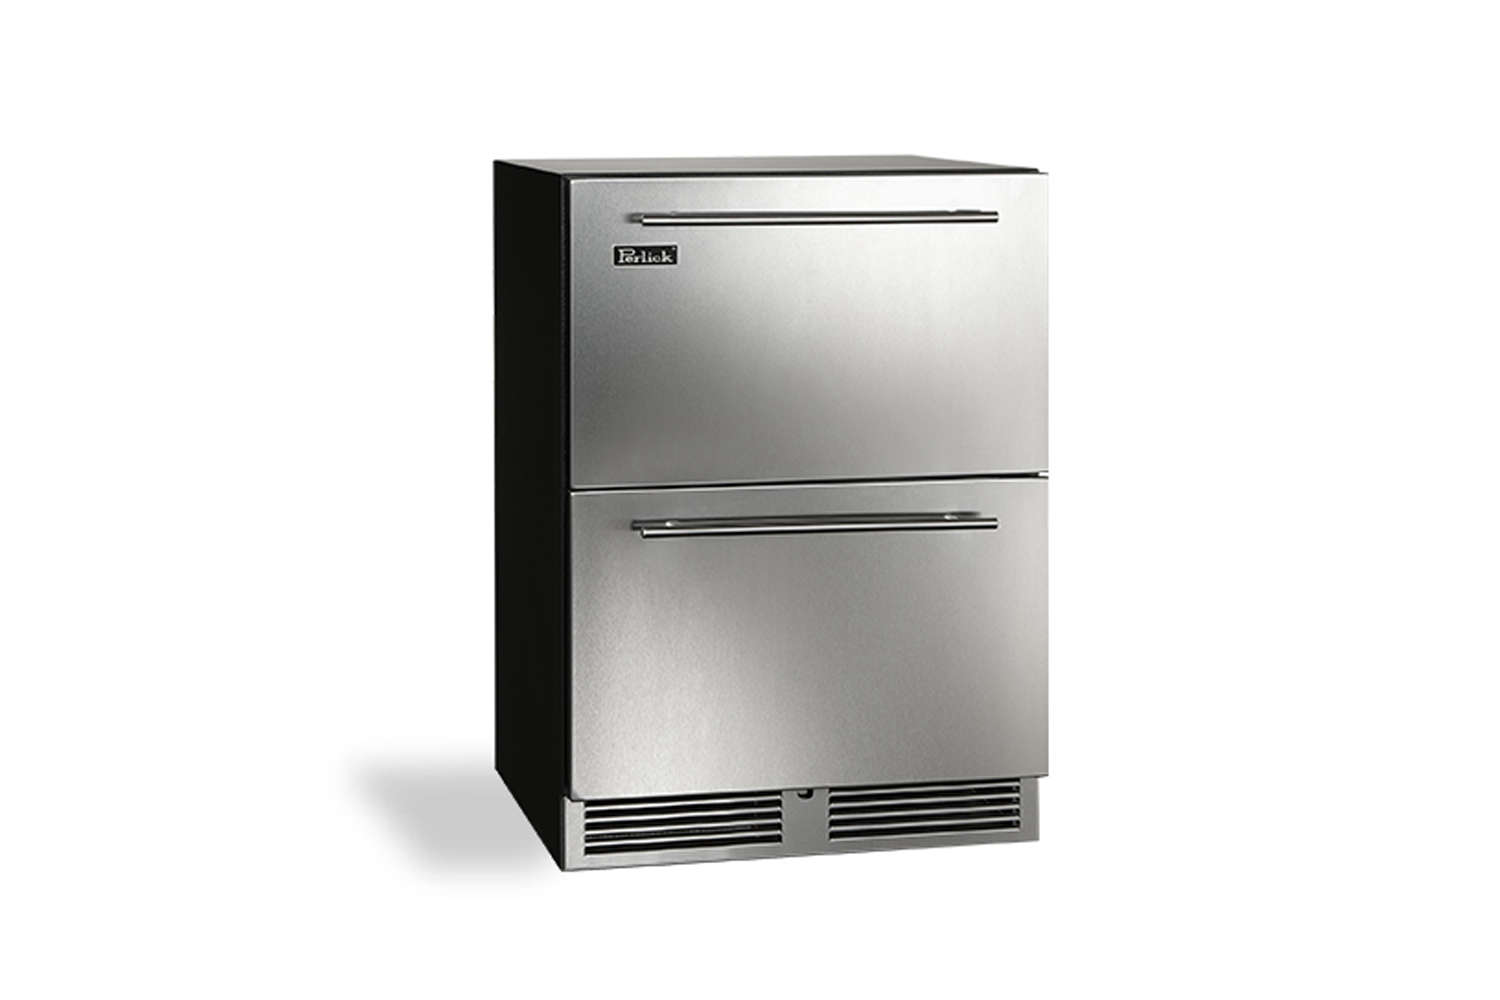 10 Easy Pieces Choosing An Undercounter Refrigerator The Perlick \24 Inch C Series Indoor Refrigerator Drawers are available through Perlick dealers; contact for price and ordering information.